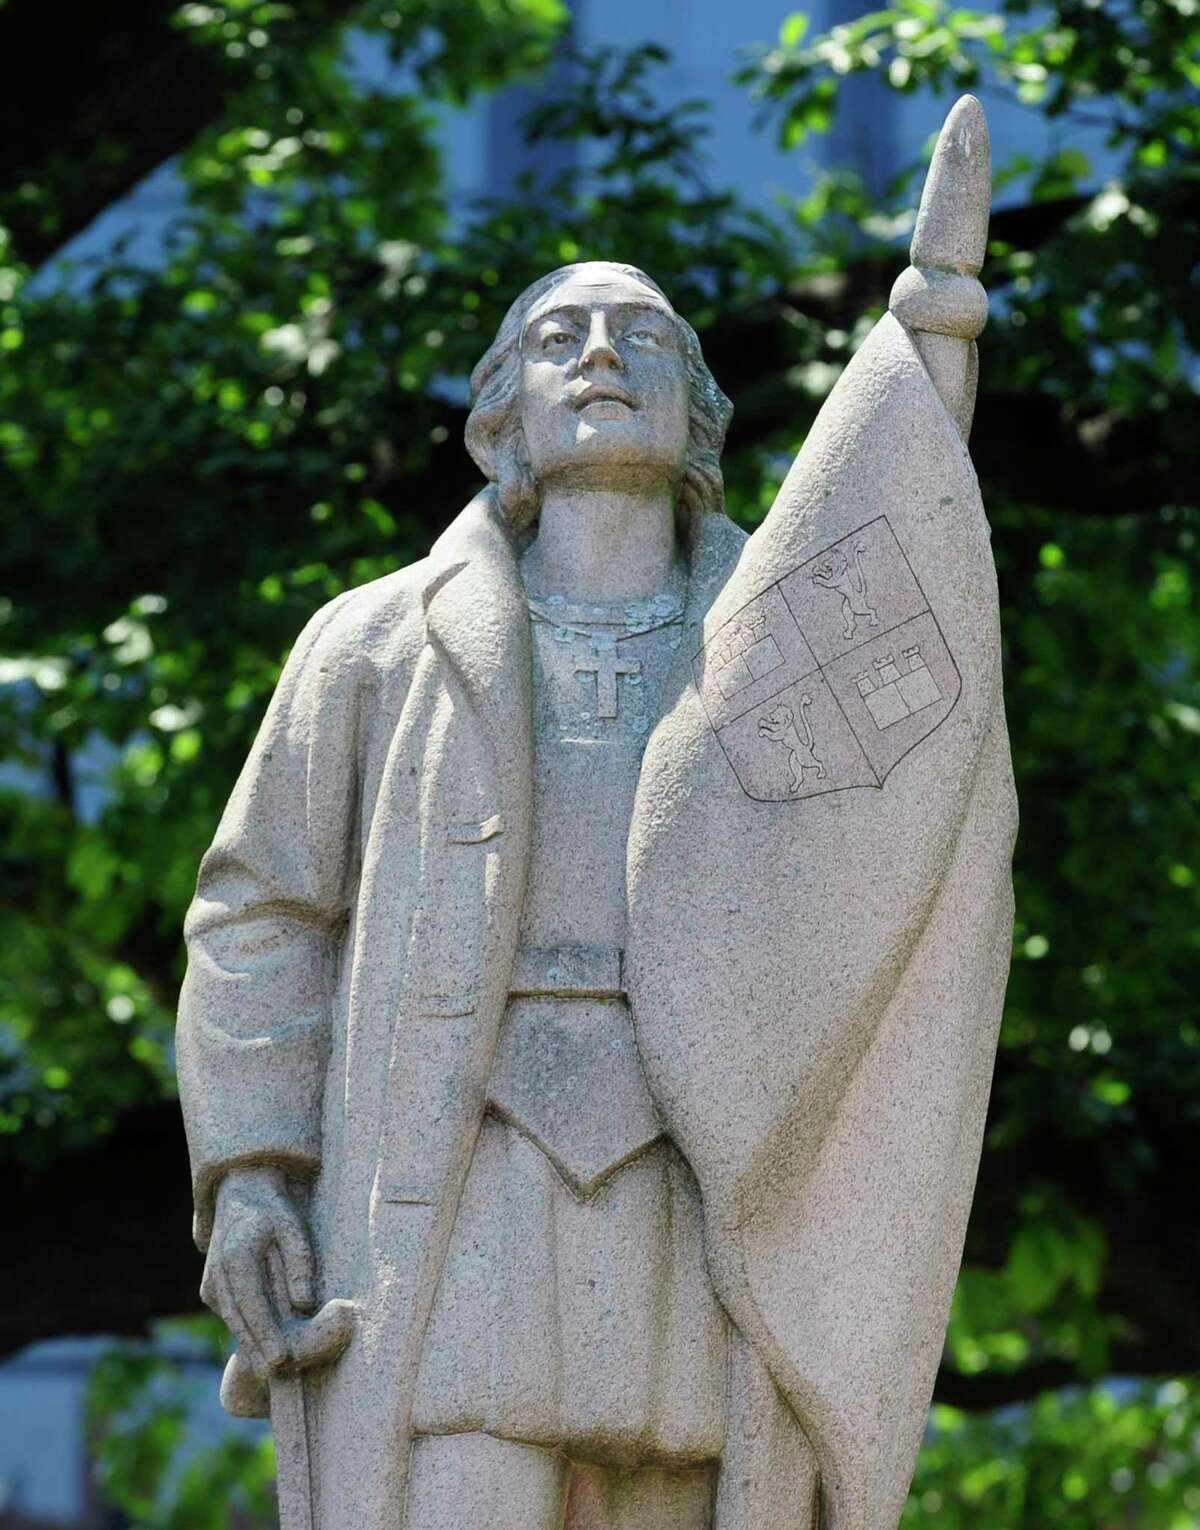 The City of Stamford has received numerous requests calling for the removal of the Christopher Columbus statue in Columbus Park.